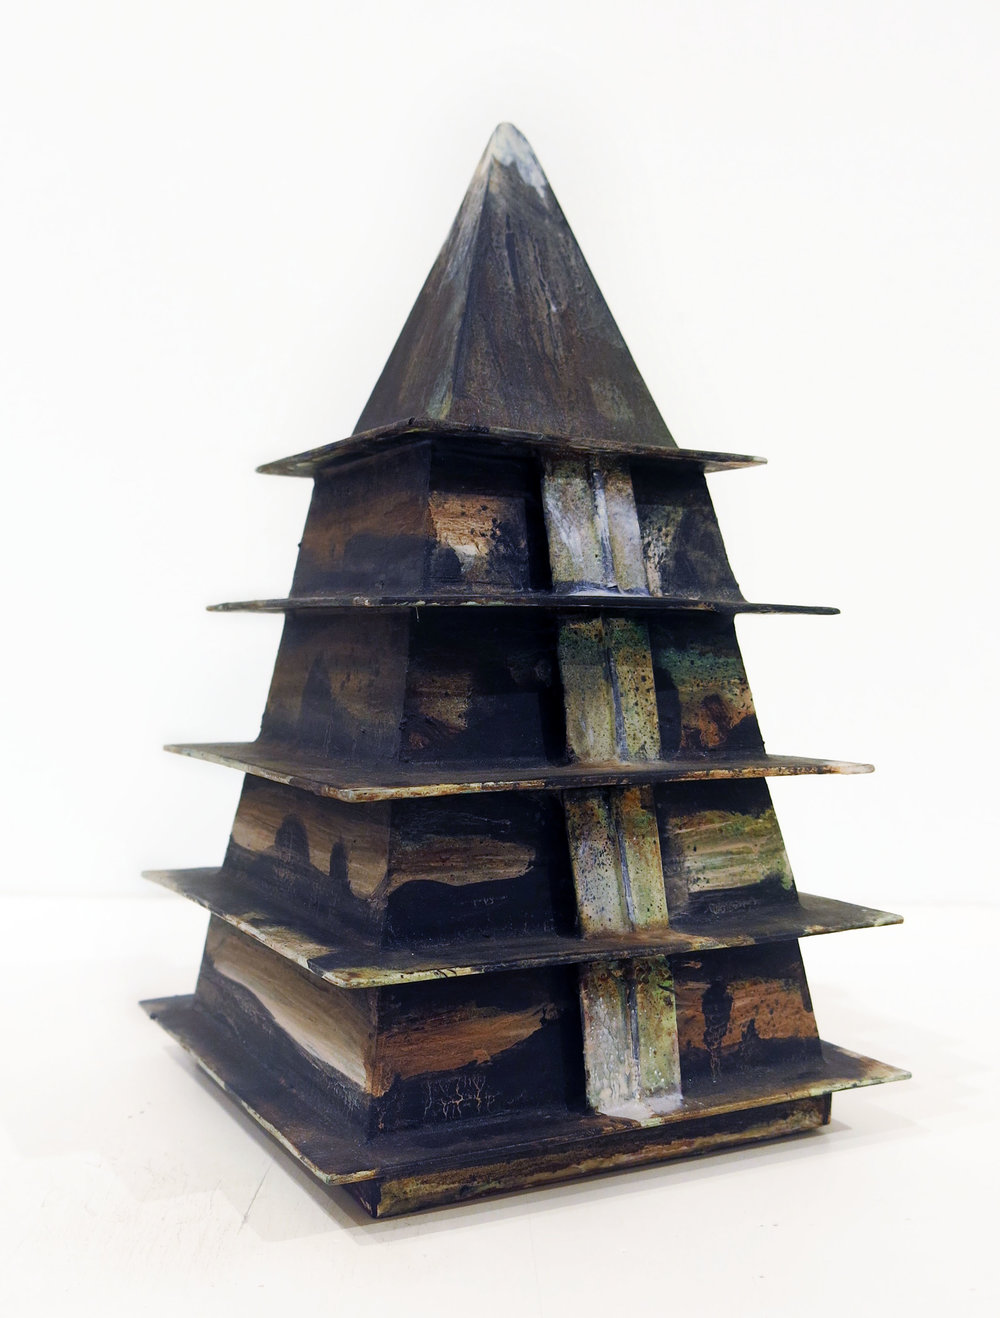 Hertbert Reichert,  Untitled (temple/ stupa)  2016, oil, wood glue, foamcore, 10.5h x 6.25w x 6.25d in.